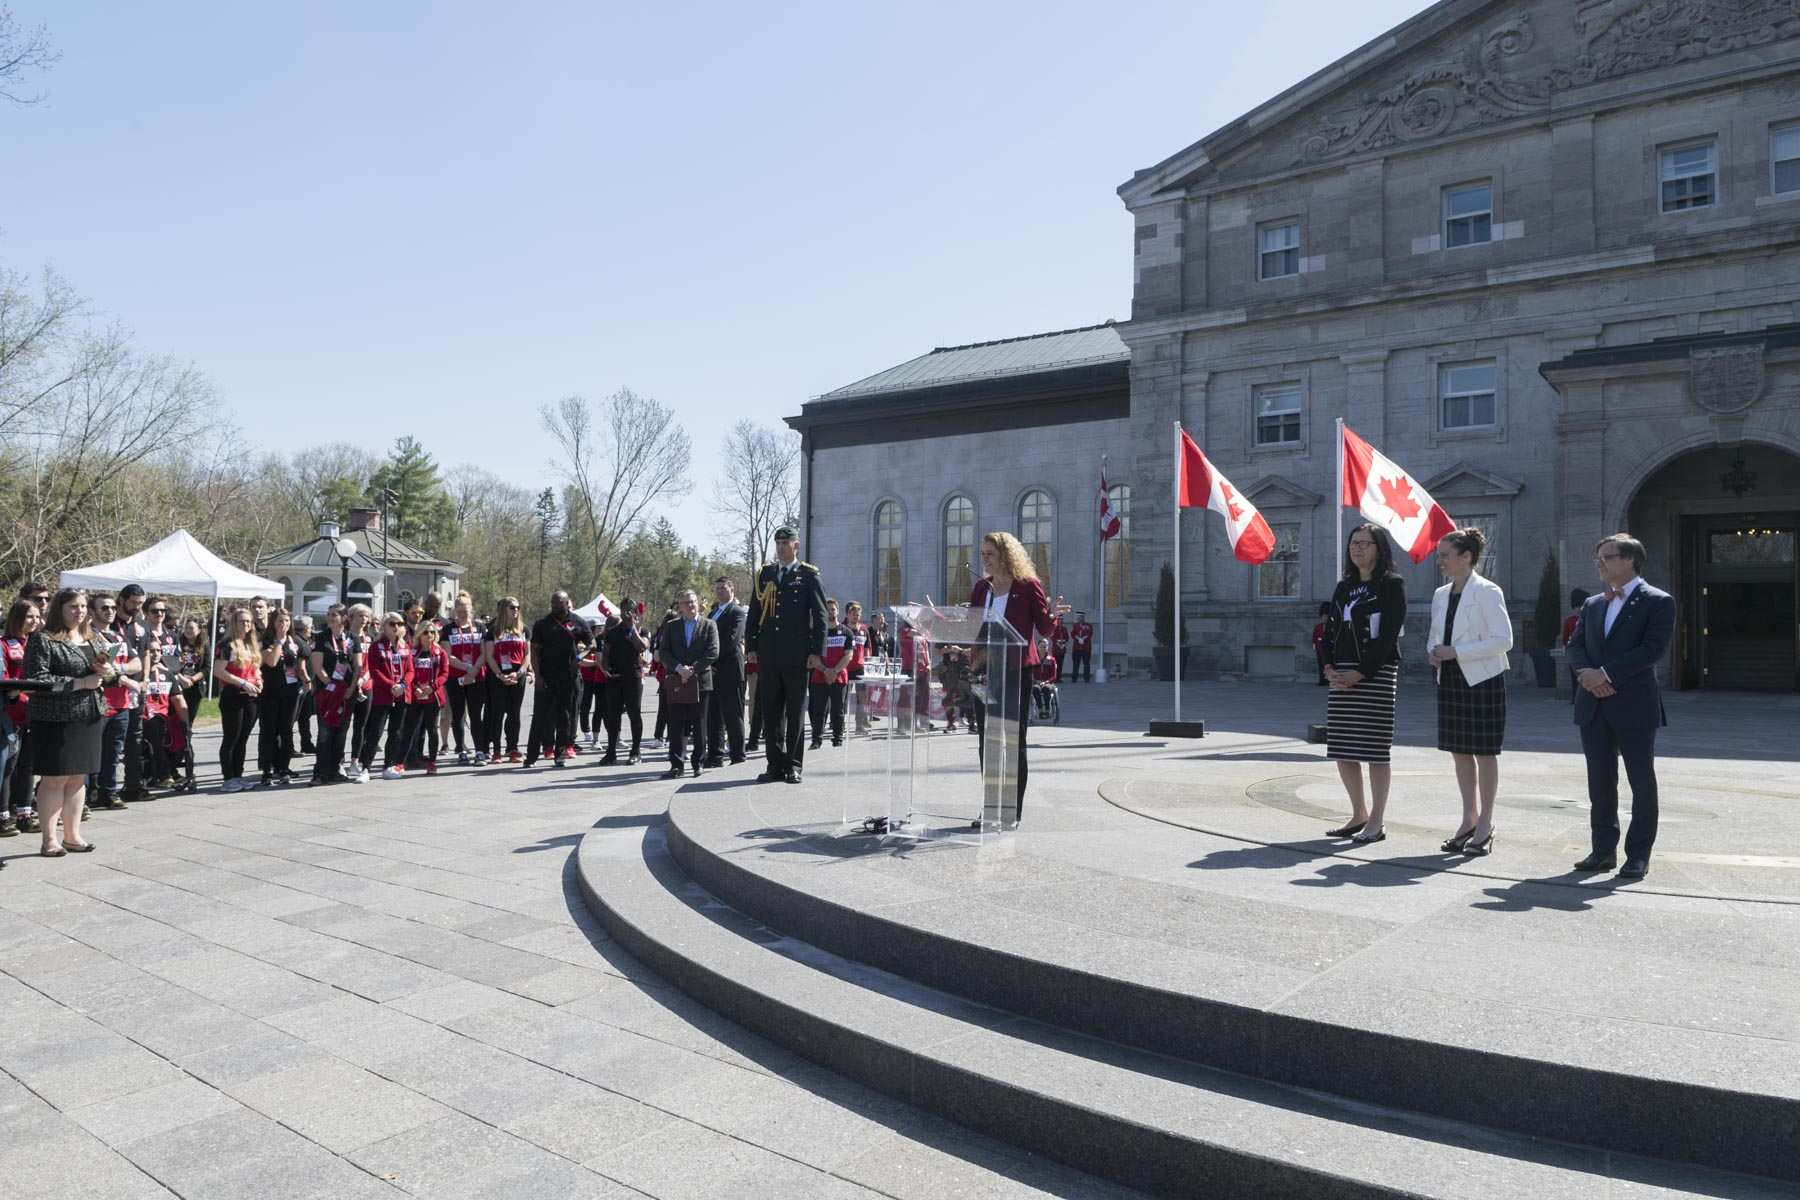 The Governor General delivered remarks and congratulated all of Team Canada athletes on their outstanding performances at the PyeonChang Winter Games. Team Canada won a total of 29 Olympic medals and 28 Paralympic medals, a new Canadian record at Winter Games.